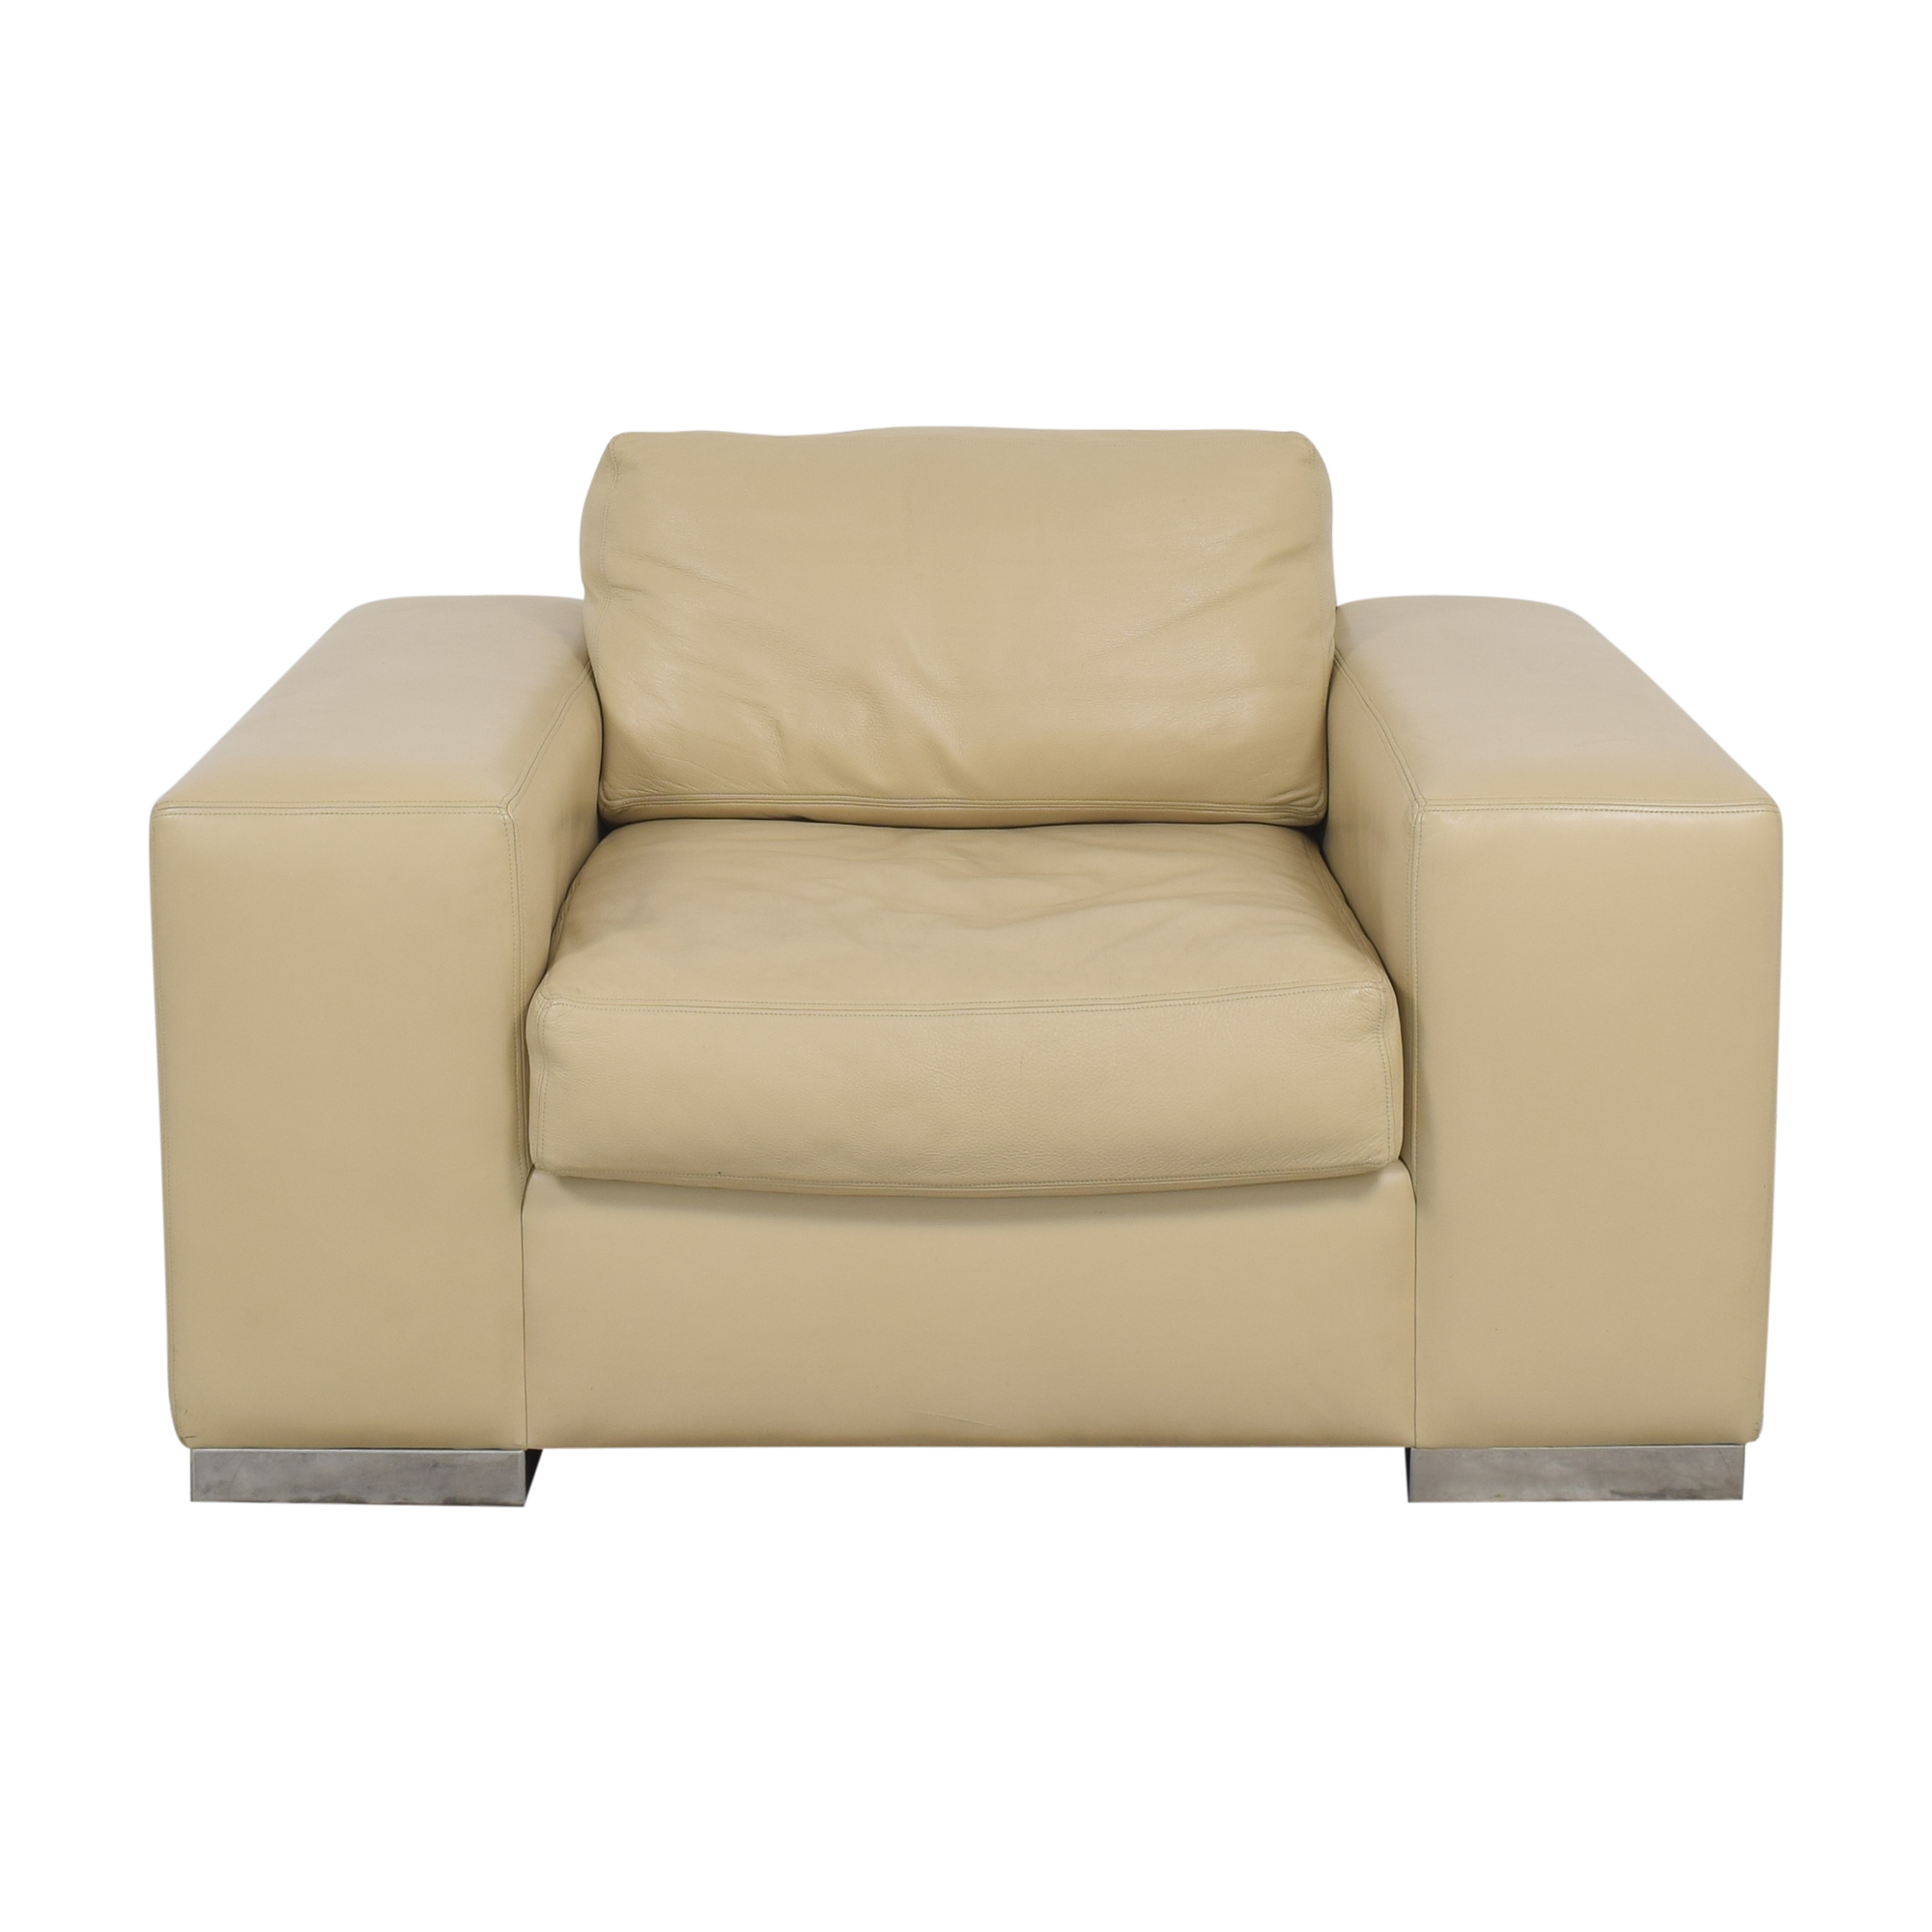 Environment Furniture Wide Accent Chair sale